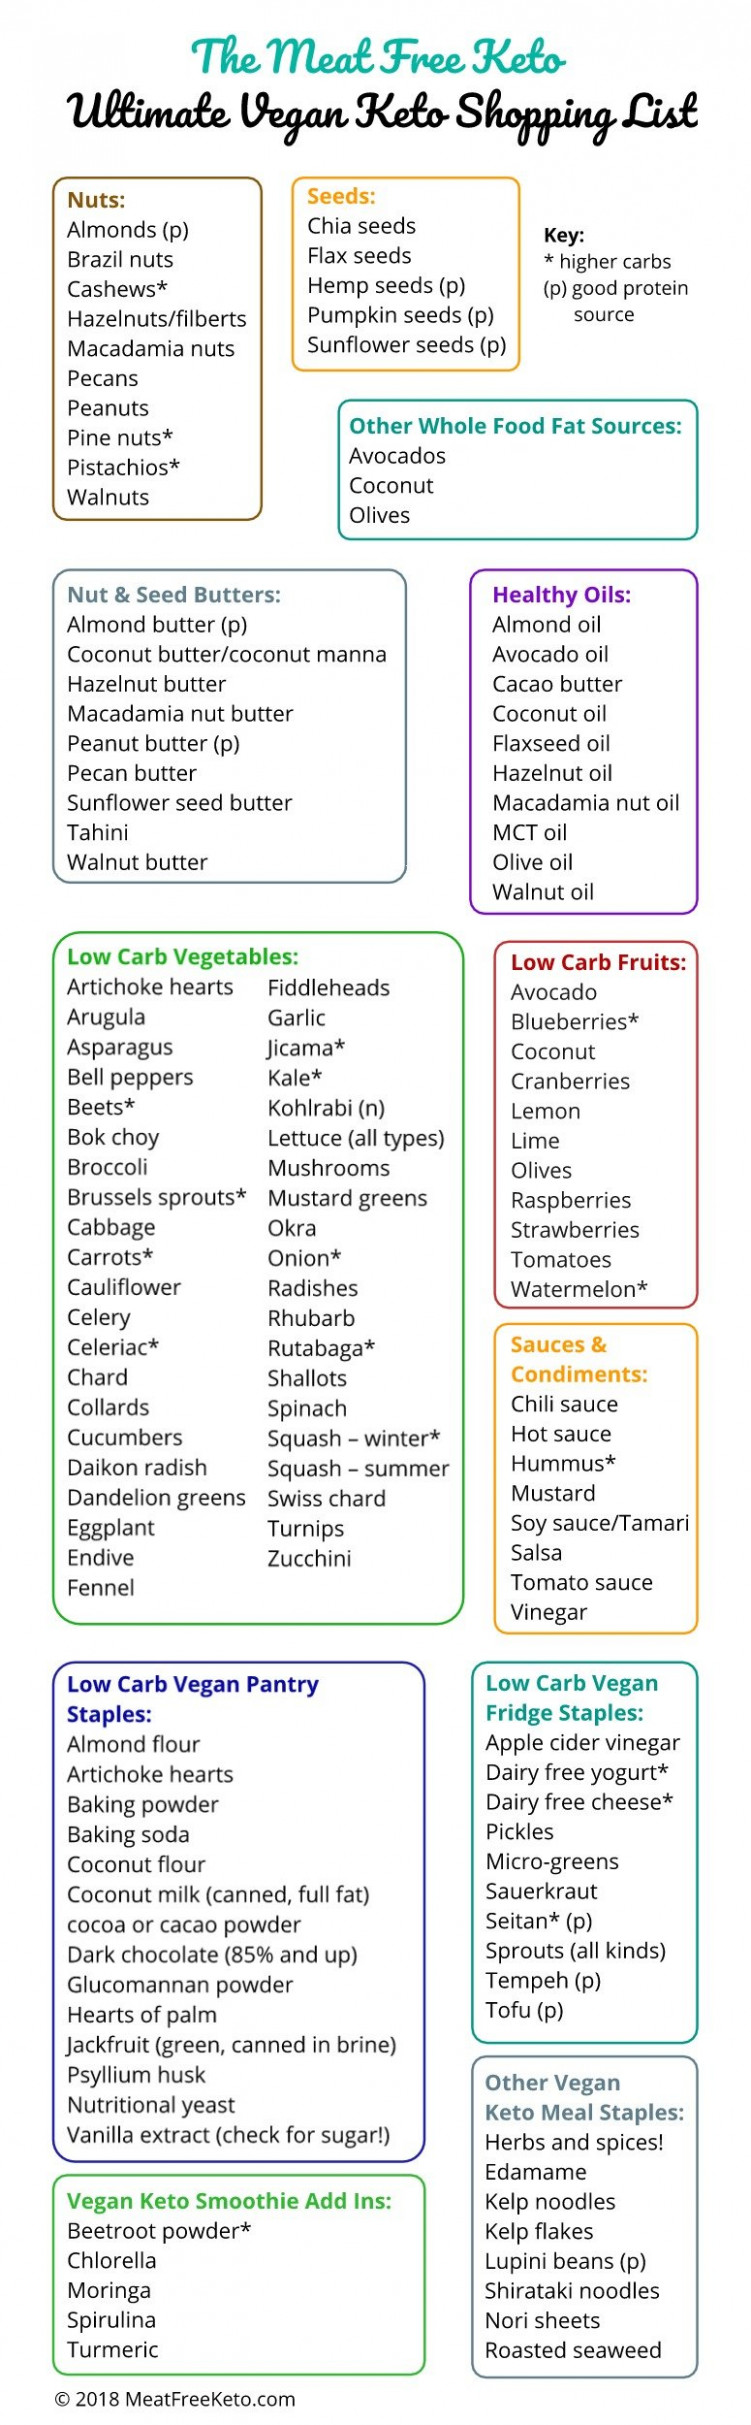 The Ultimate Vegan Keto Shopping List | Meat Free Keto ..